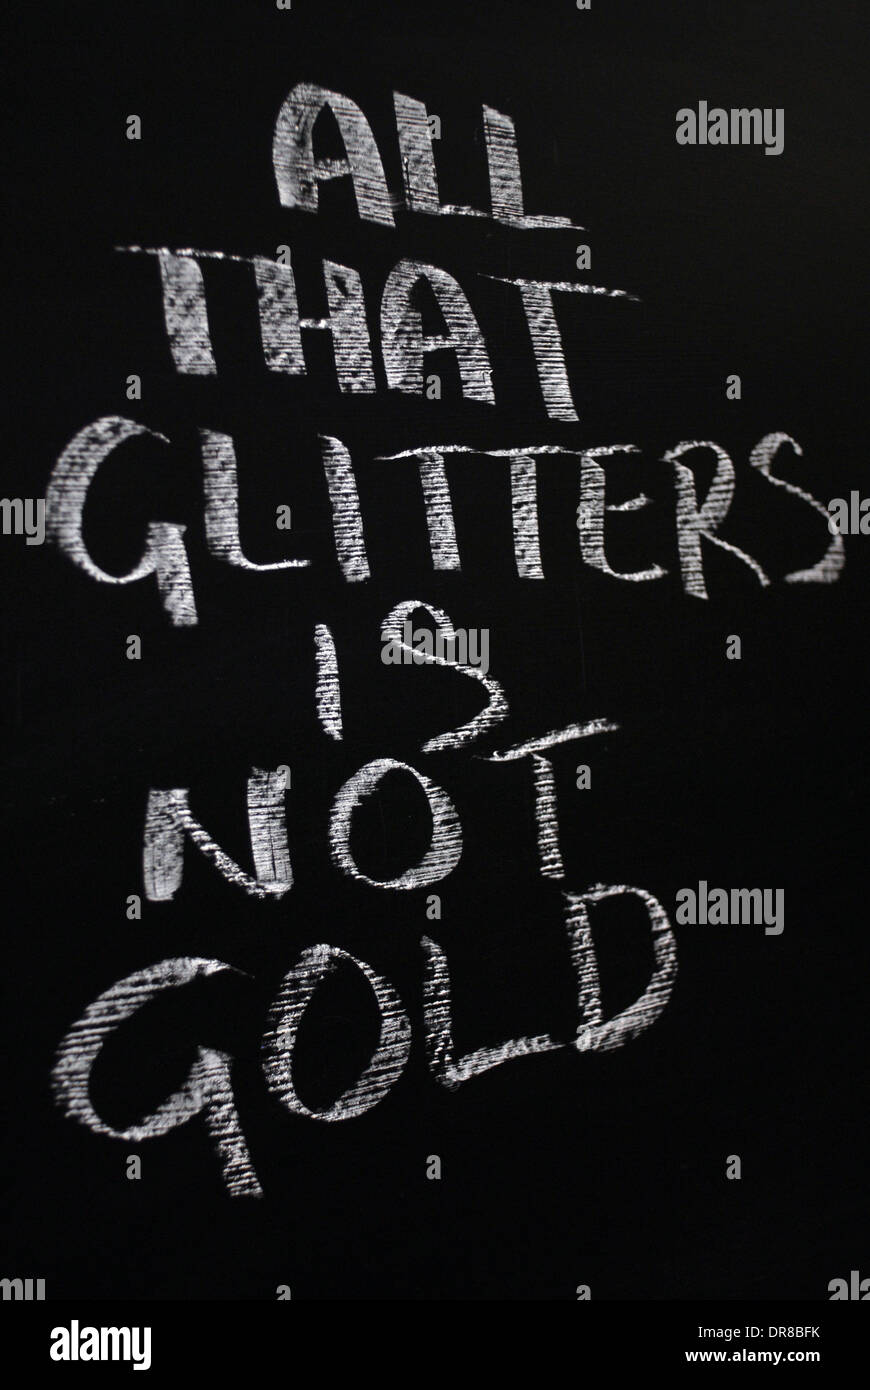 chalk writing- All that glitters is not gold.- words written on a blackboard. - Stock Image